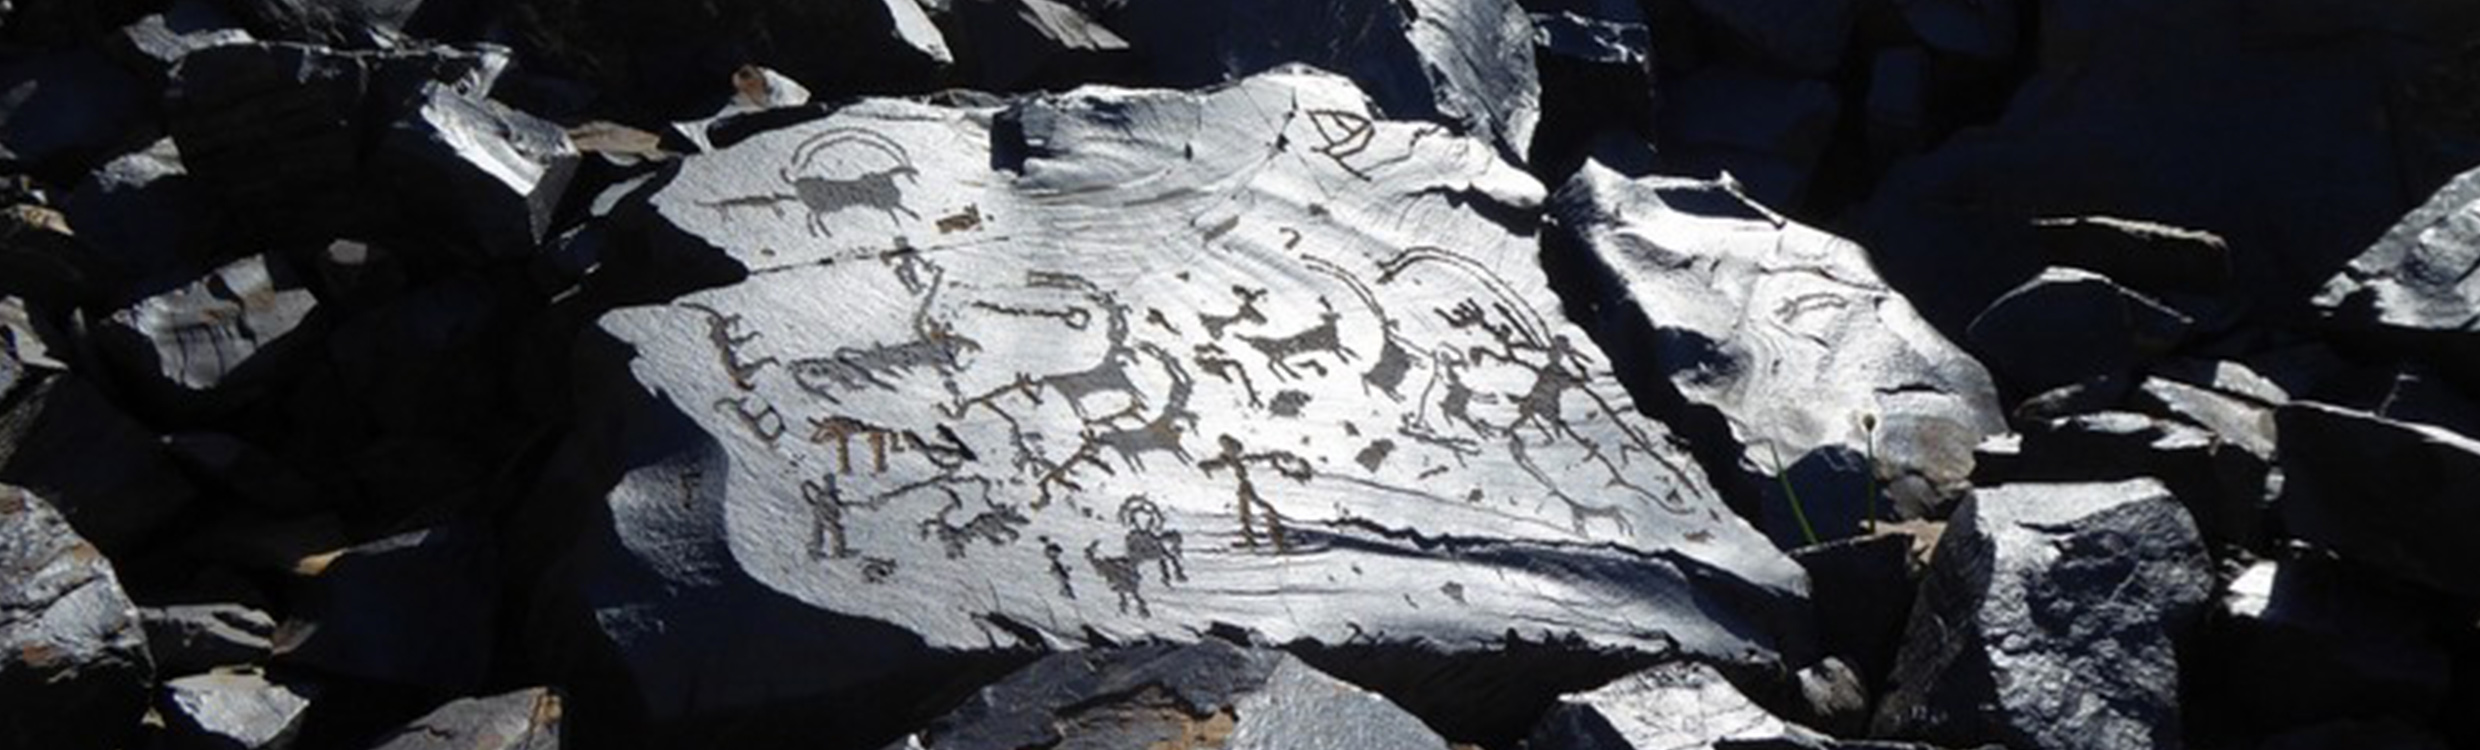 Finding ancient petroglyphs in the mountains of Kyrgyzstan